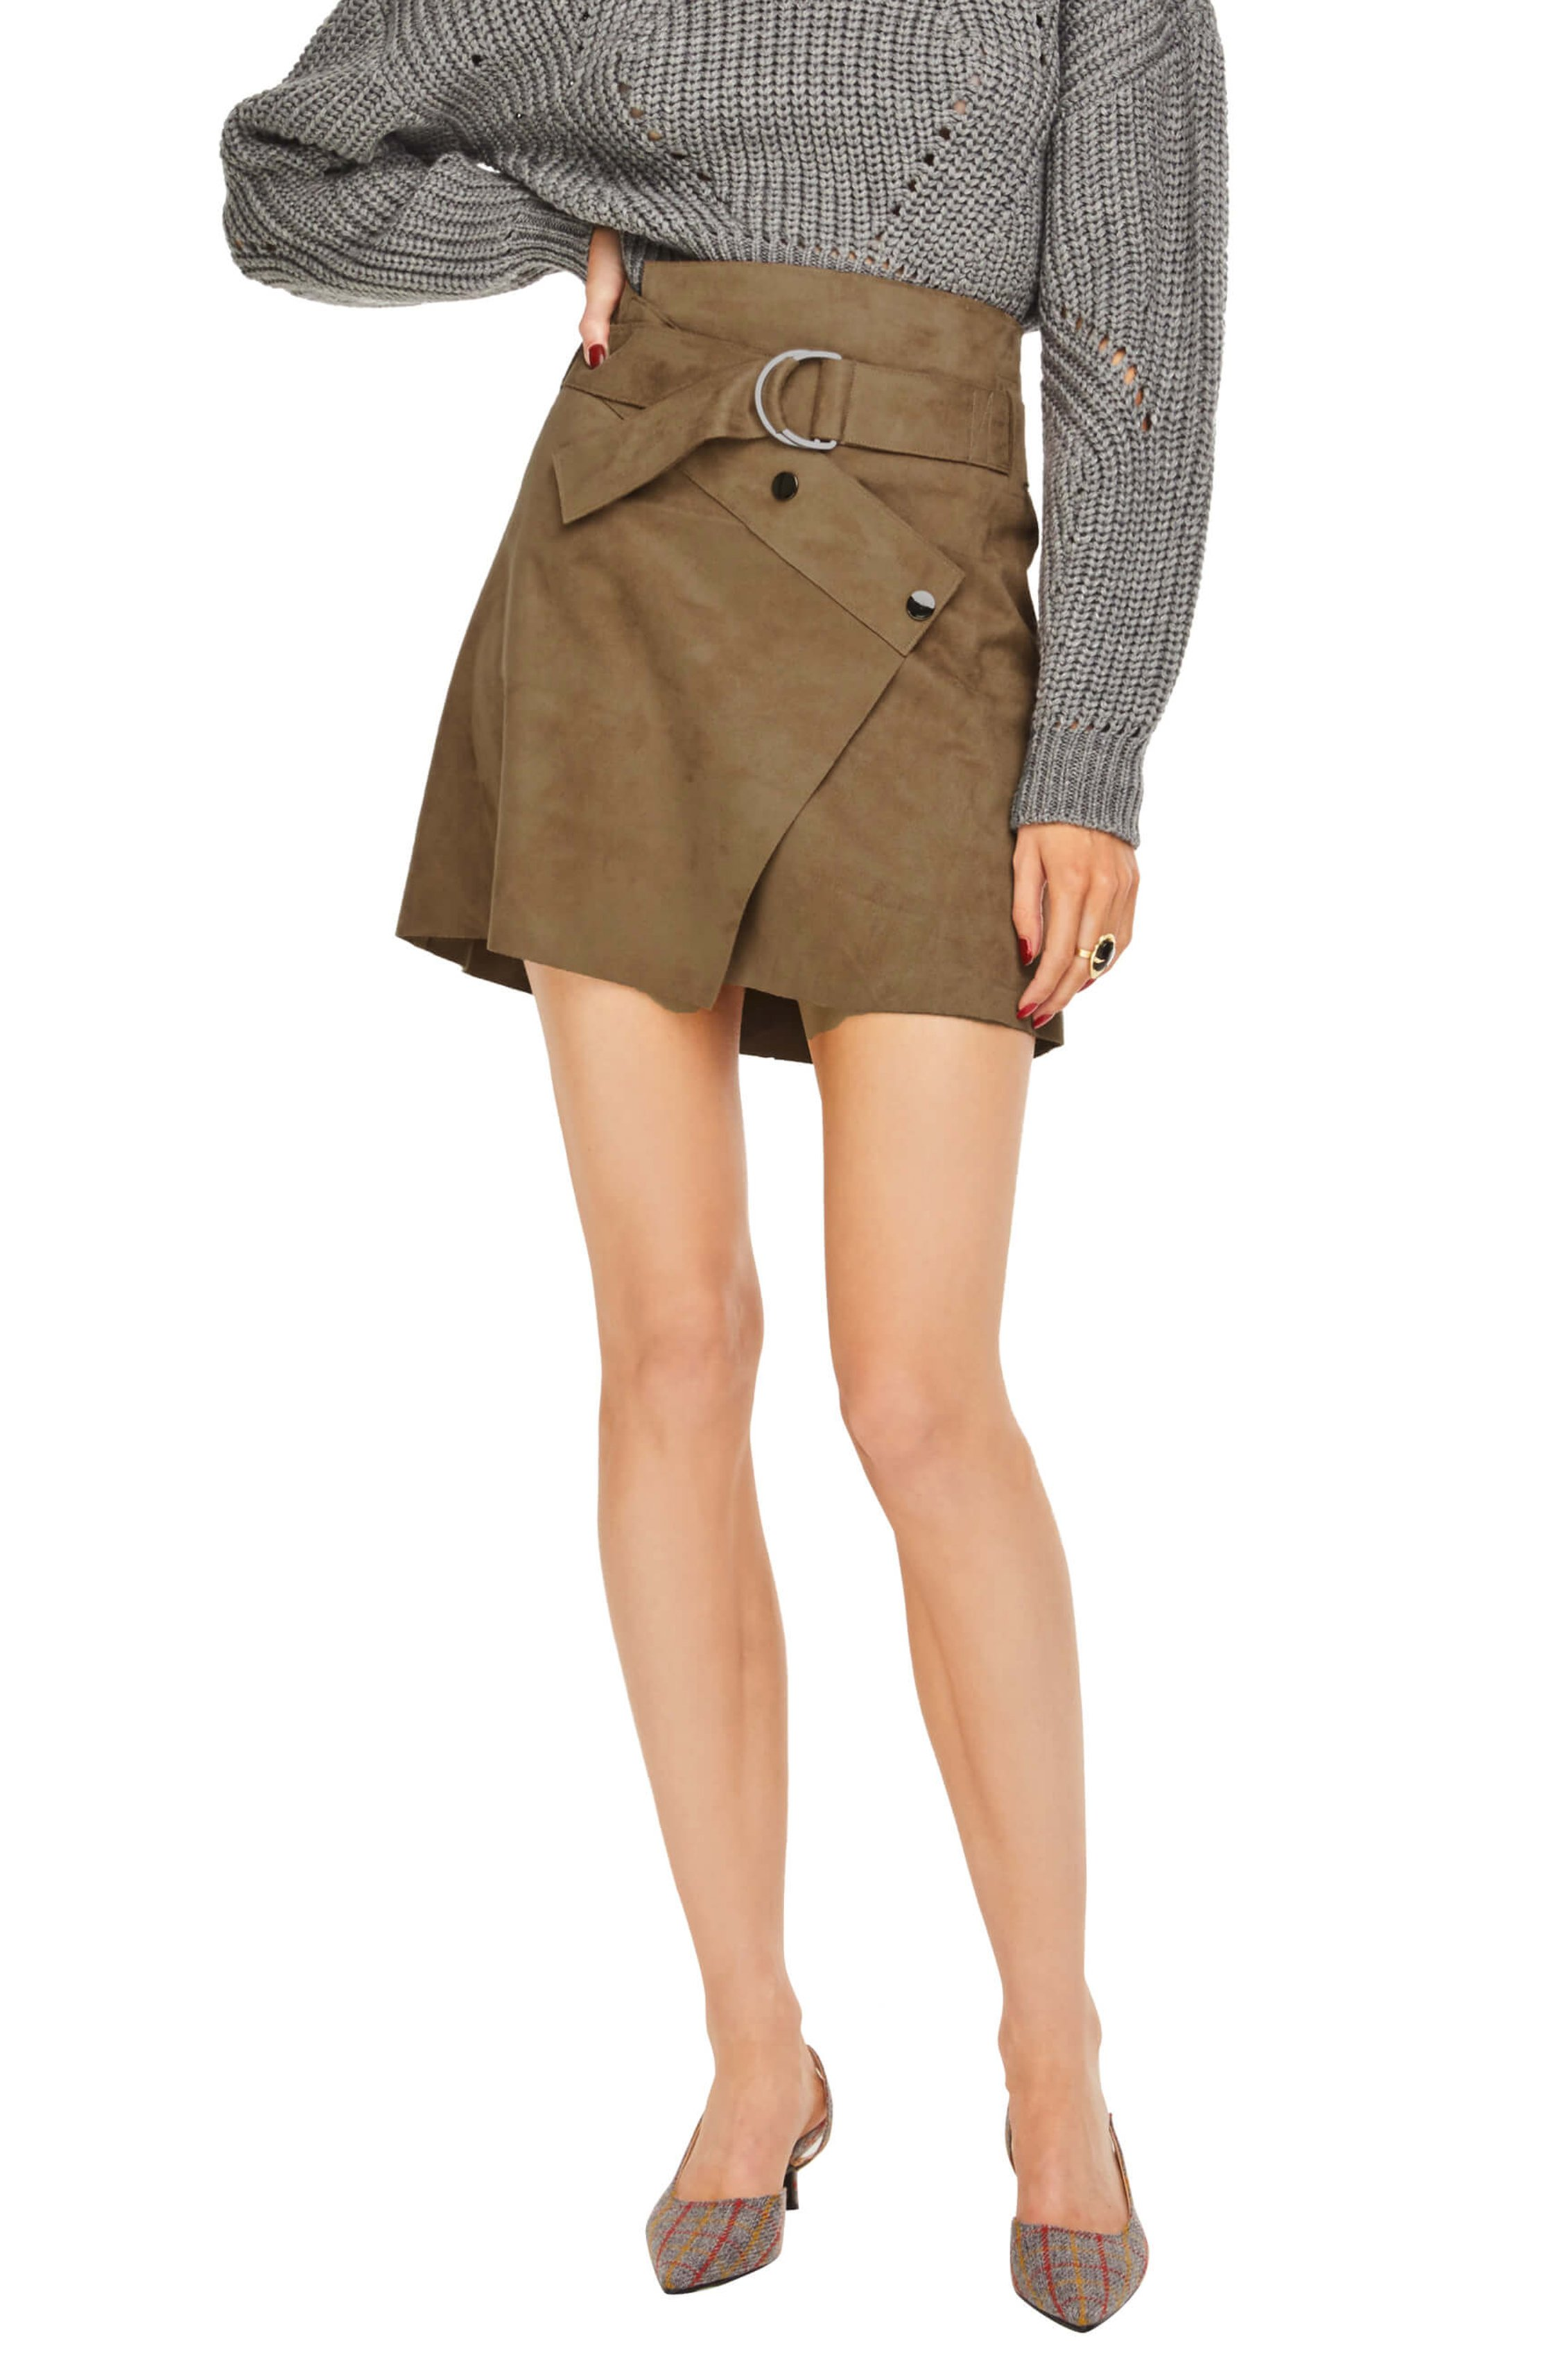 The Dionne Skirt - This skirt can be dressed up or down for any Turkey Day occasion. Try styling it with a chunky knit and some dainty jewels for a simplistic fall look.